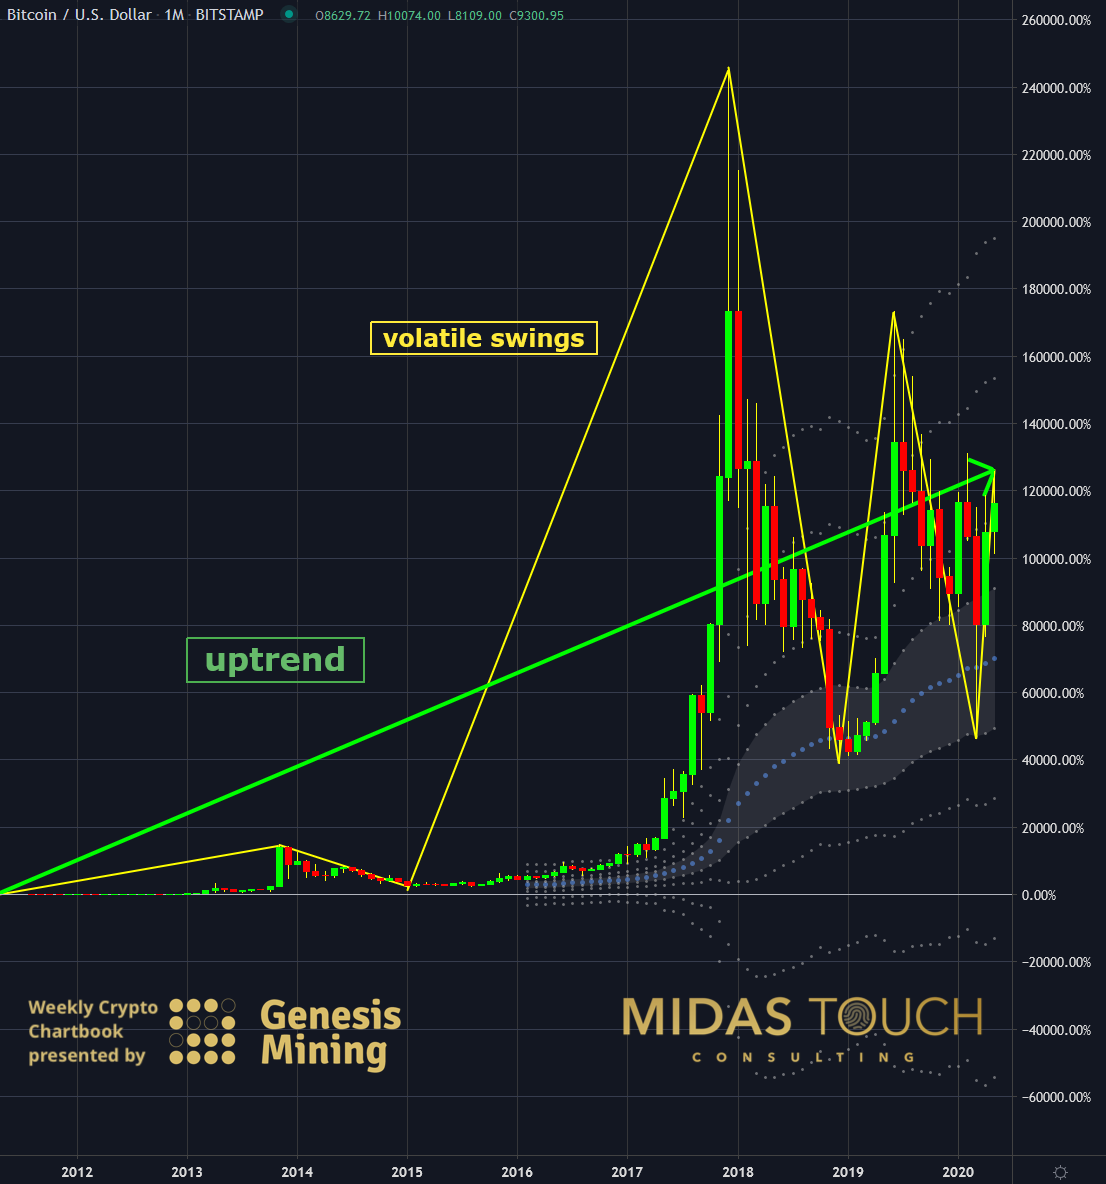 BTC-USD, monthly percentage chart as of May 13th, 2020